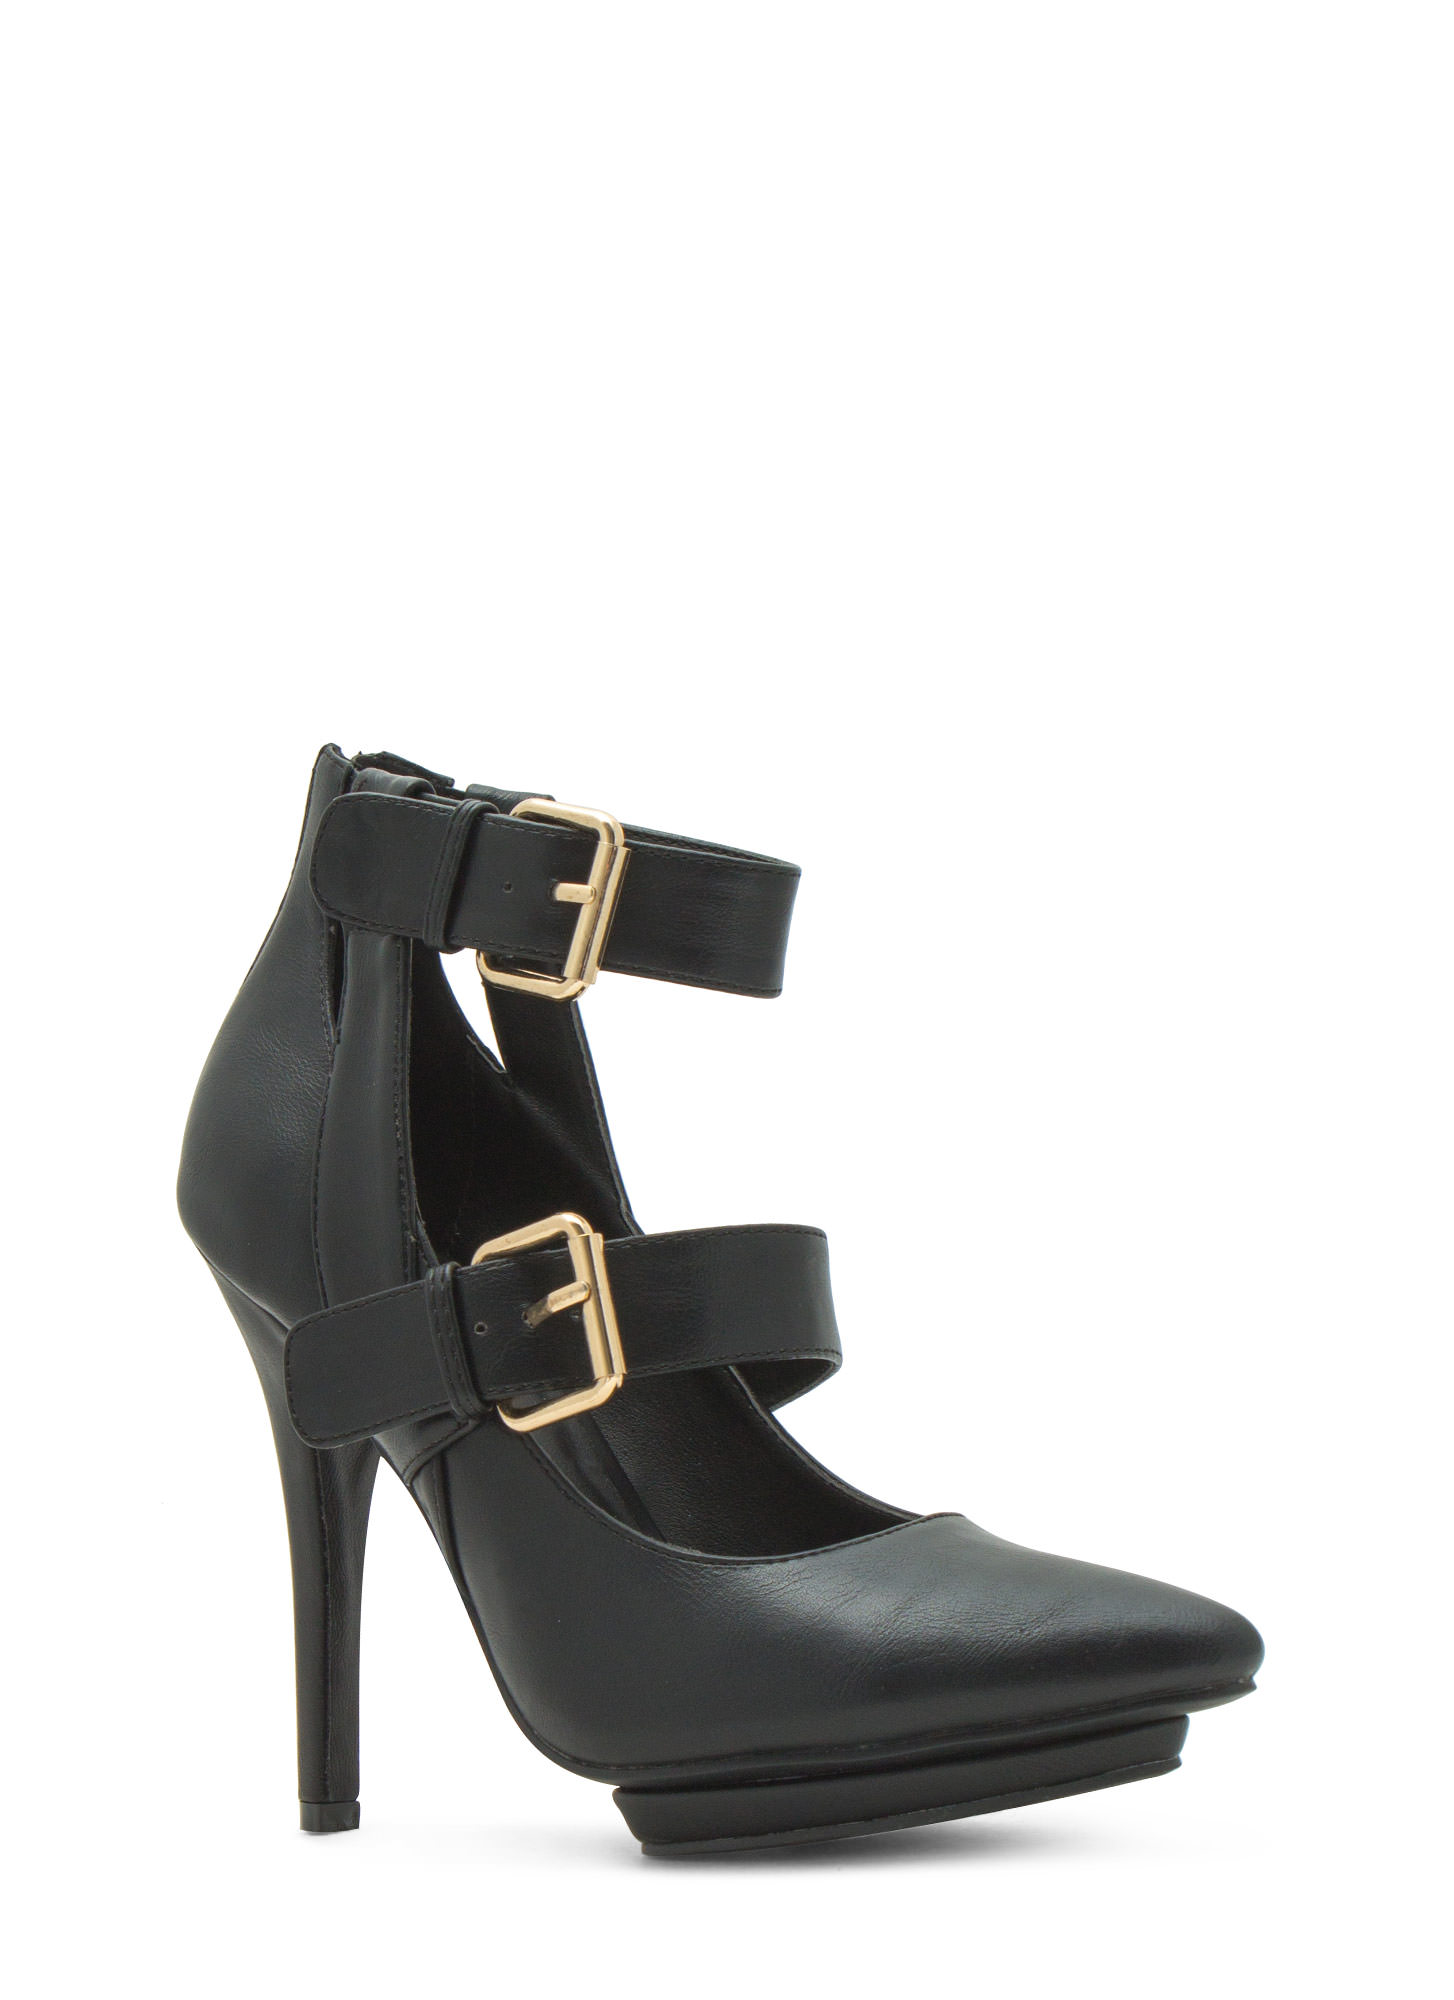 Double Trouble Strappy Heels BLACK